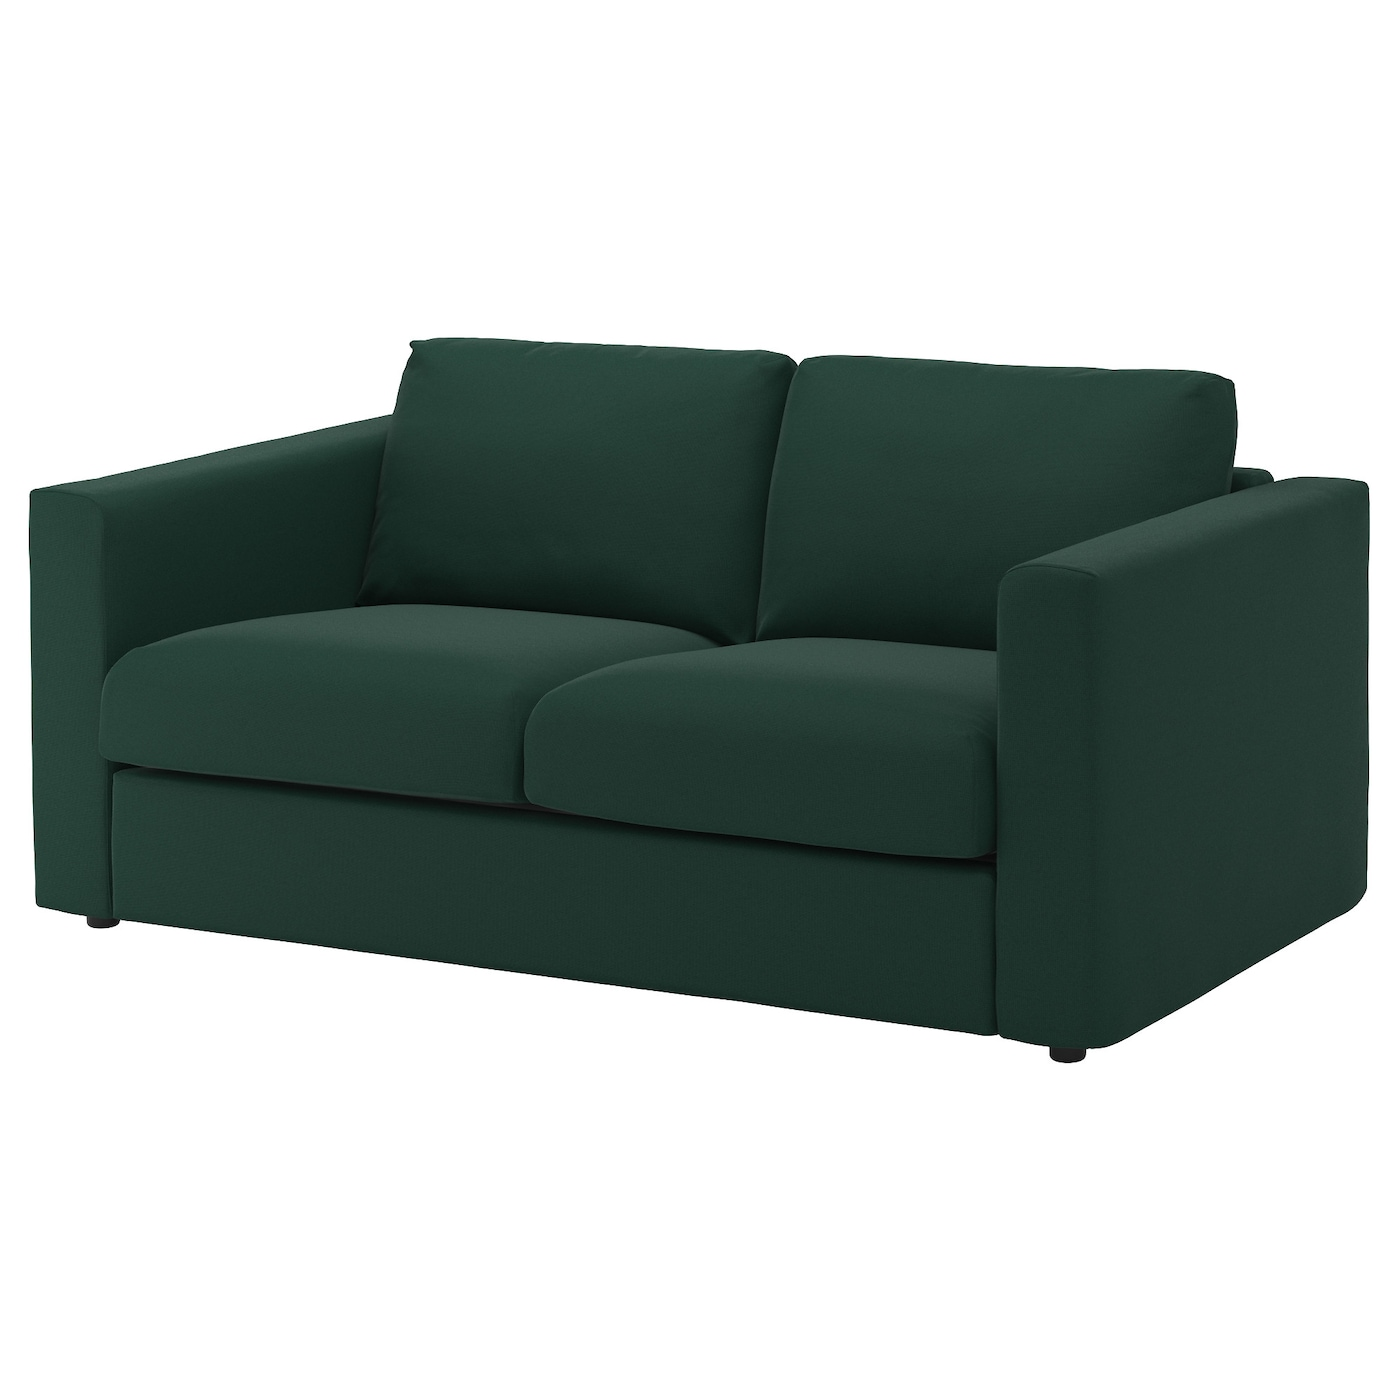 Best green sofa cover furniture for Green furniture covers